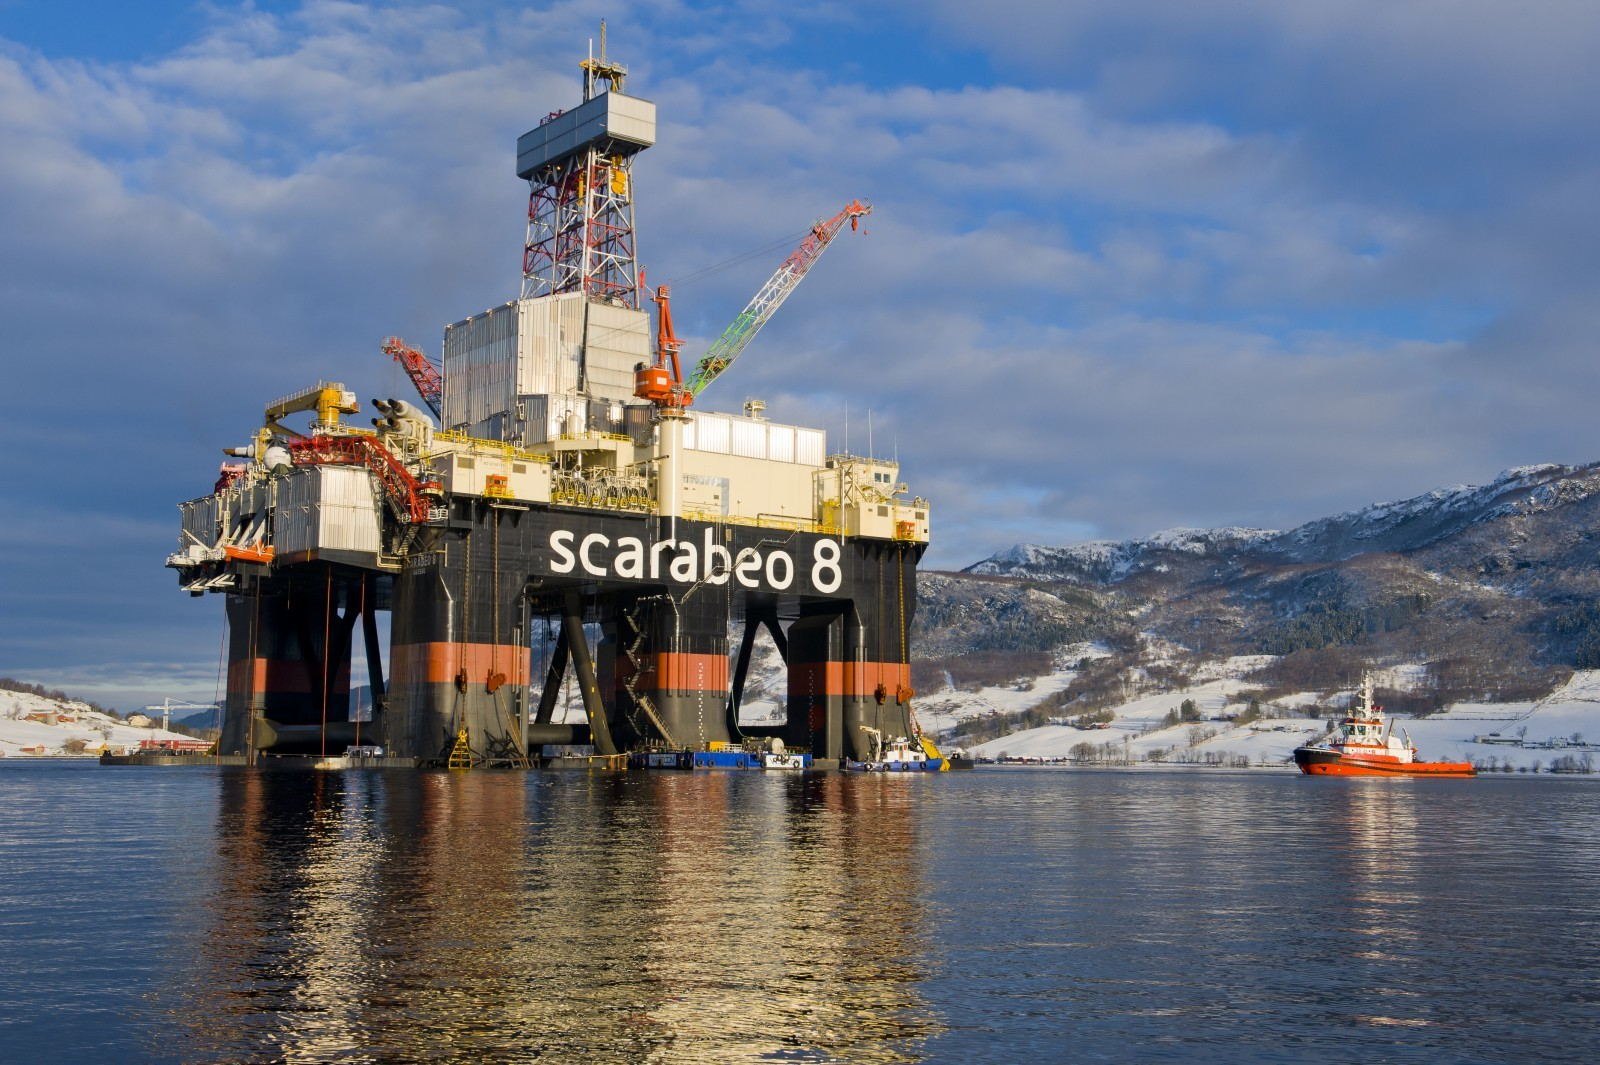 The Scarabeo 8 semi-submersible rig.